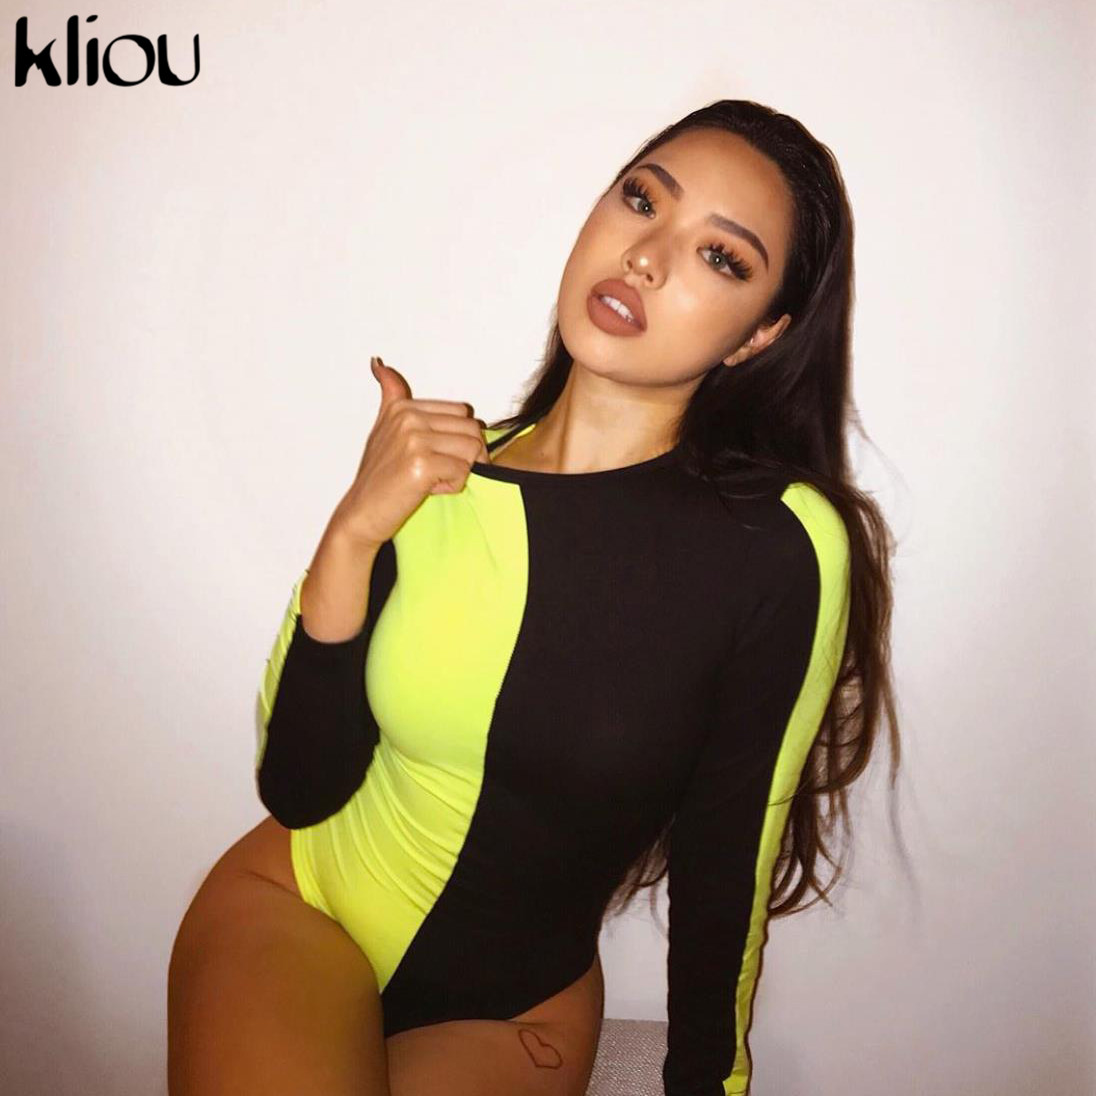 Kliou Women Full Sleeve Bodysuit O-neck Skinny Rompers Jumpsuit 2019 Summer Fashion Neon Green Orange Patchwork Playsuit Clothes